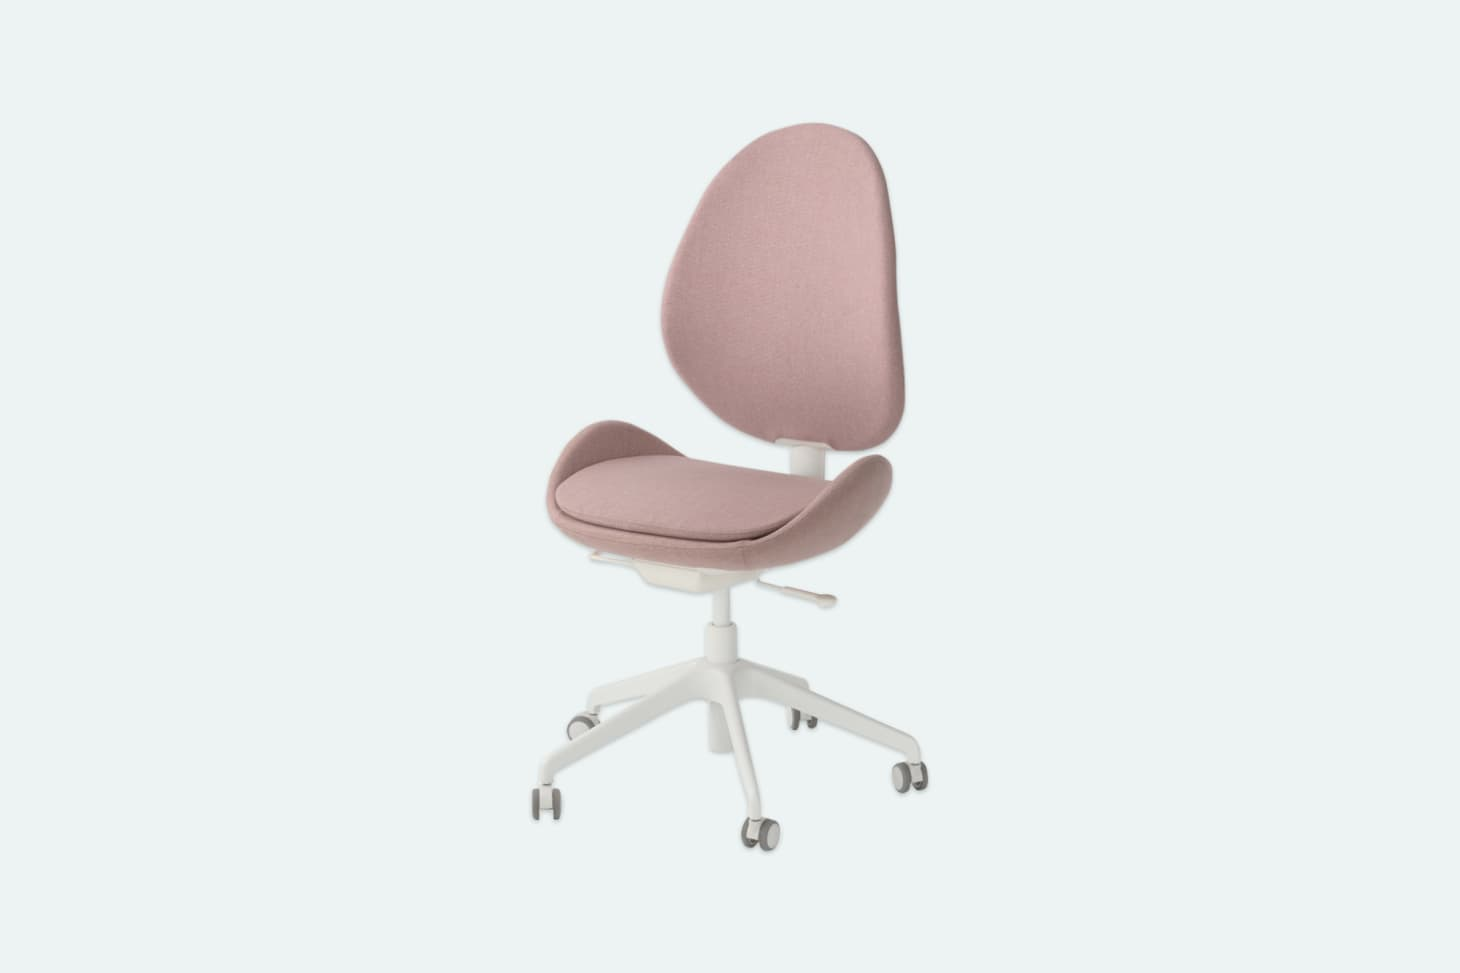 Wondrous The Best Office Chairs Stylish Ergonomic Apartment Therapy Pabps2019 Chair Design Images Pabps2019Com